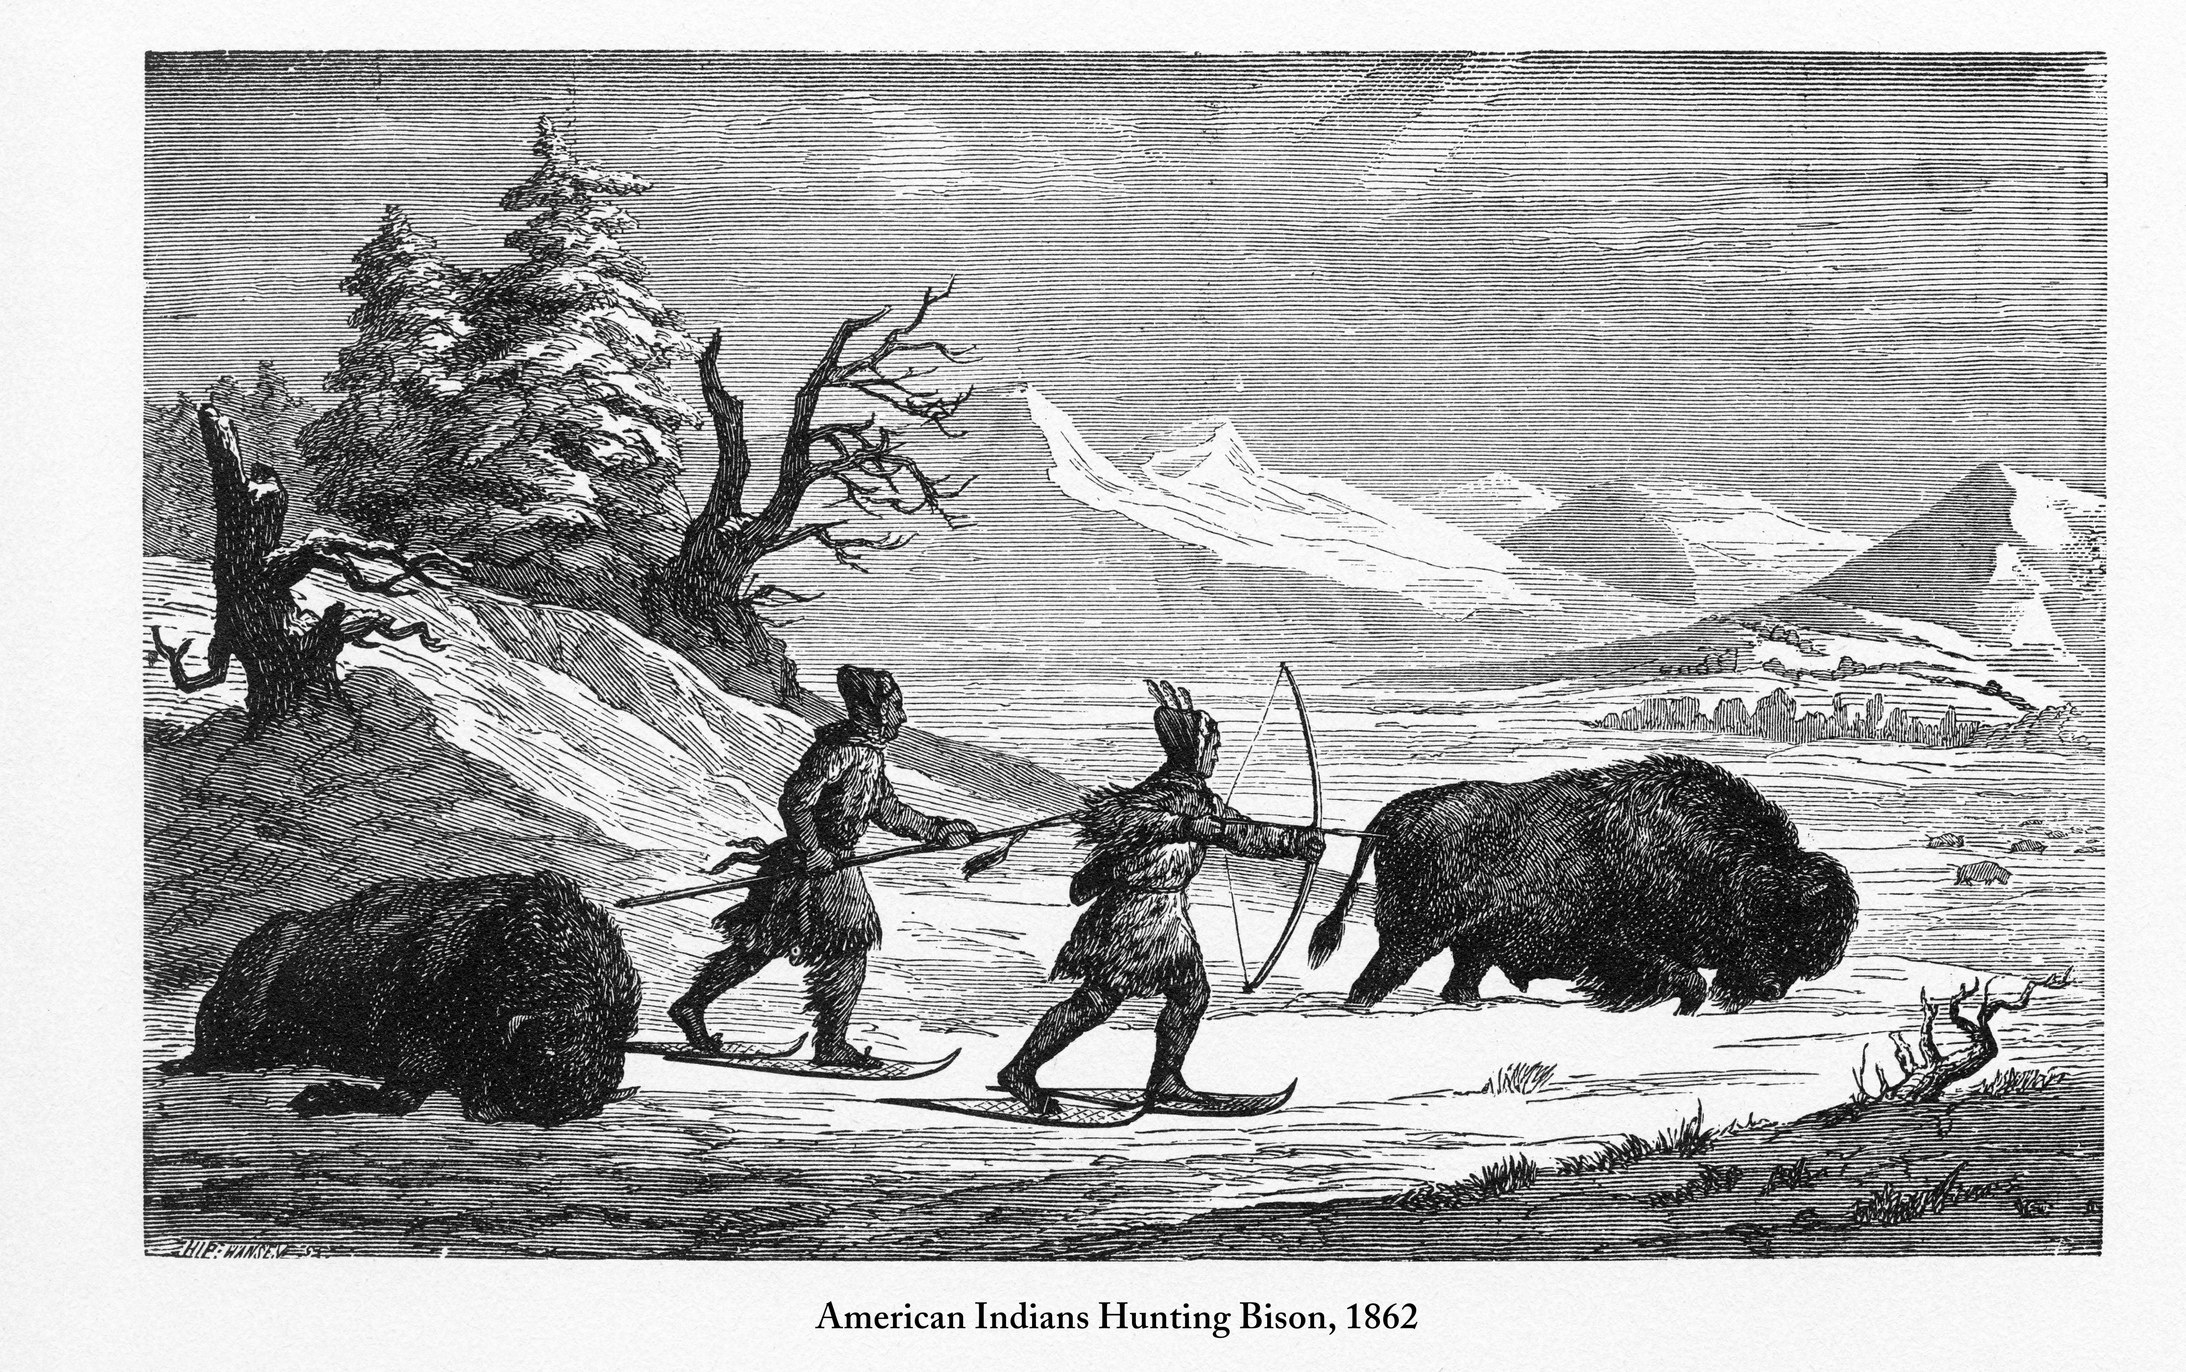 An illustration of two Native Americans using snowshoes as they hunt bison